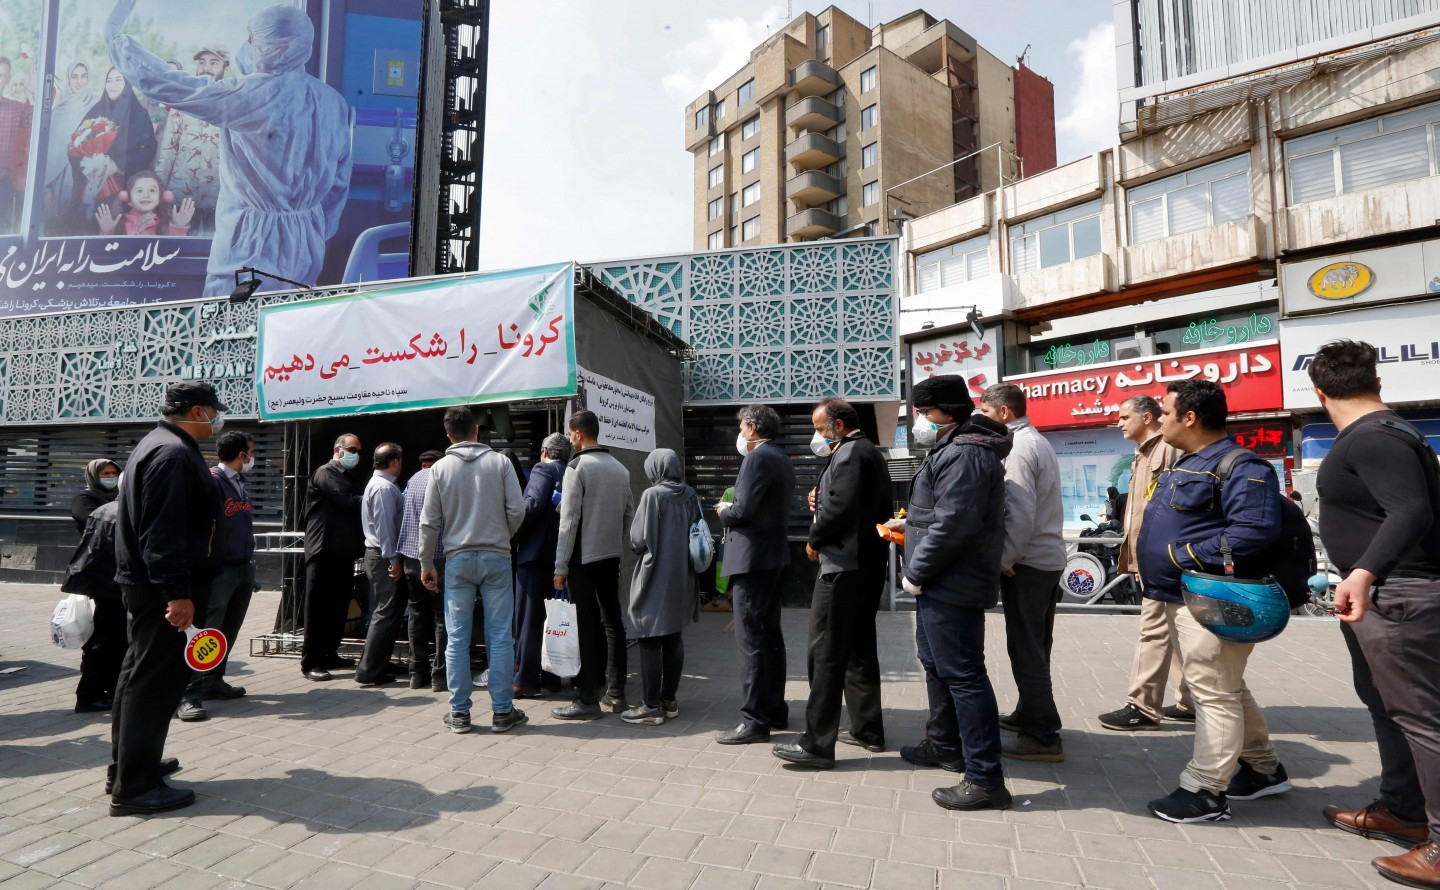 People queue in line to receive packages for precautions against the Covid-19 coronavirus provided by the Basij, a militia loyal to Iran's Islamic republic establishment, from a booth outside Meydan-e Vali Asr metro station in the capital Tehran on 15 March 2020. (STRINGER/AFP)